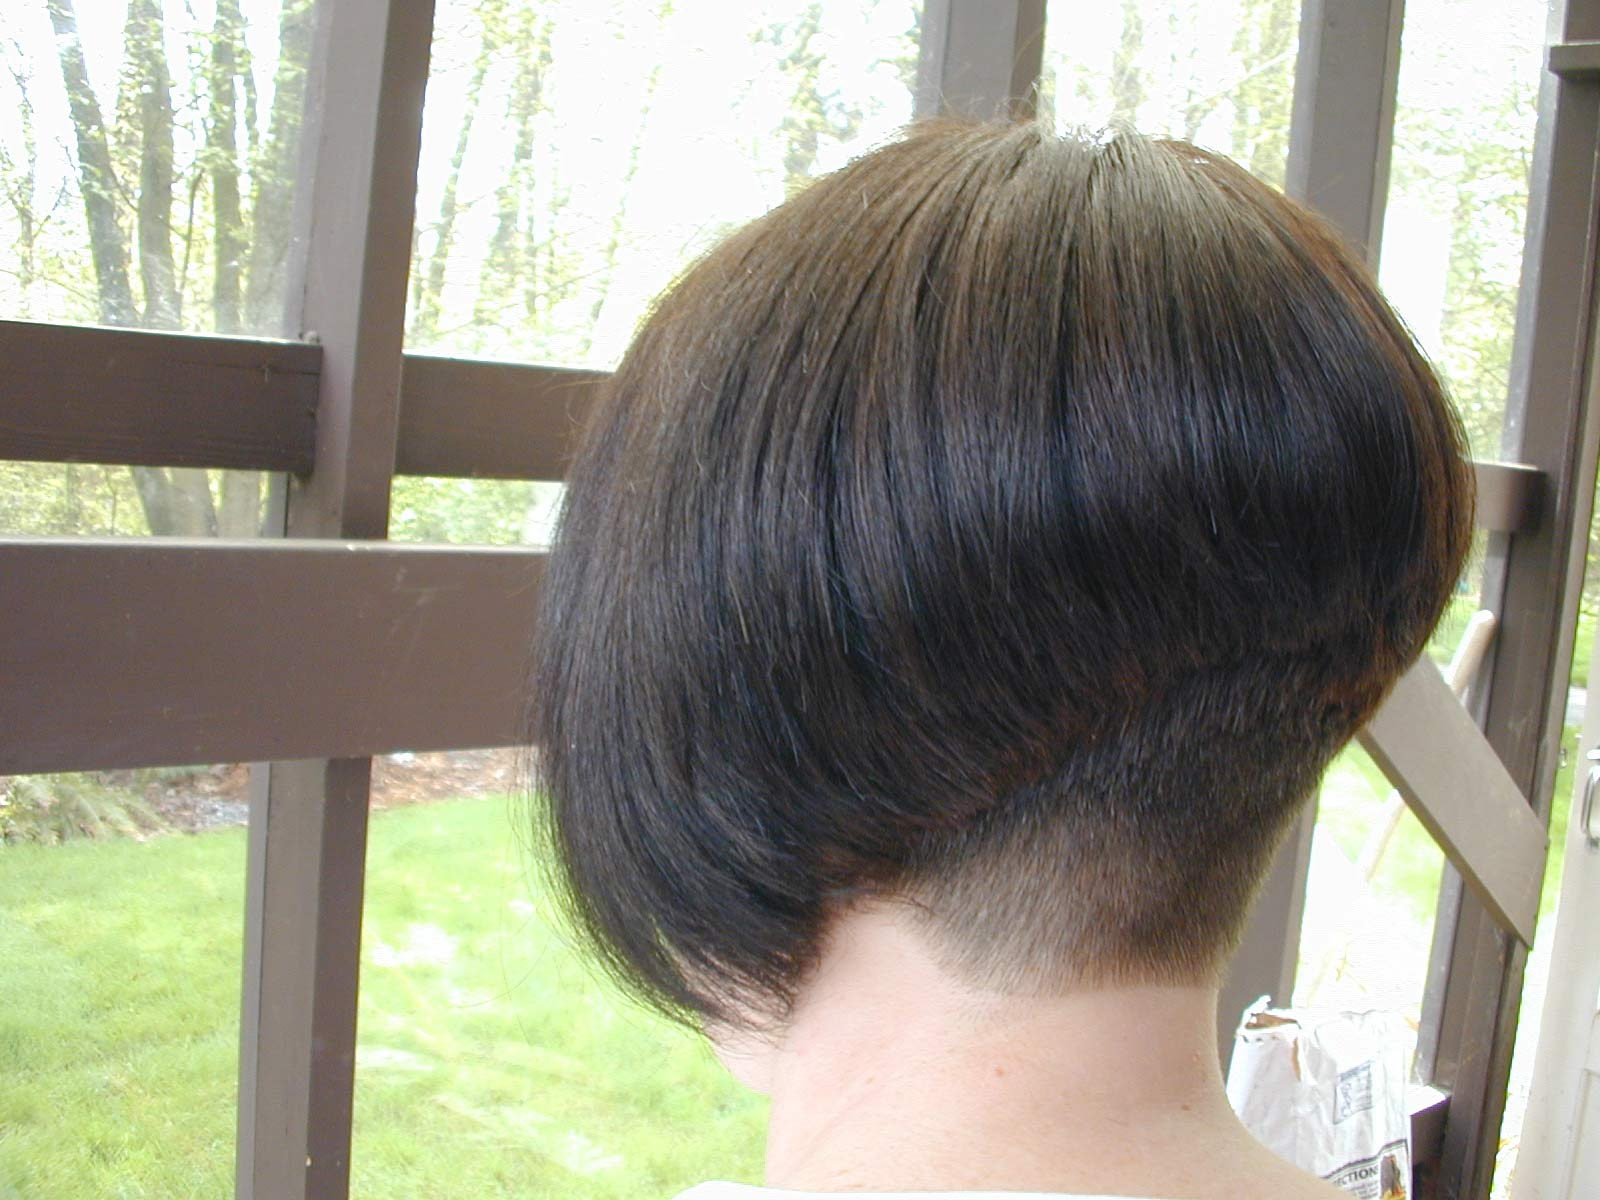 Bob haircuts back view - Short Angled Bob Hairstyles Back View